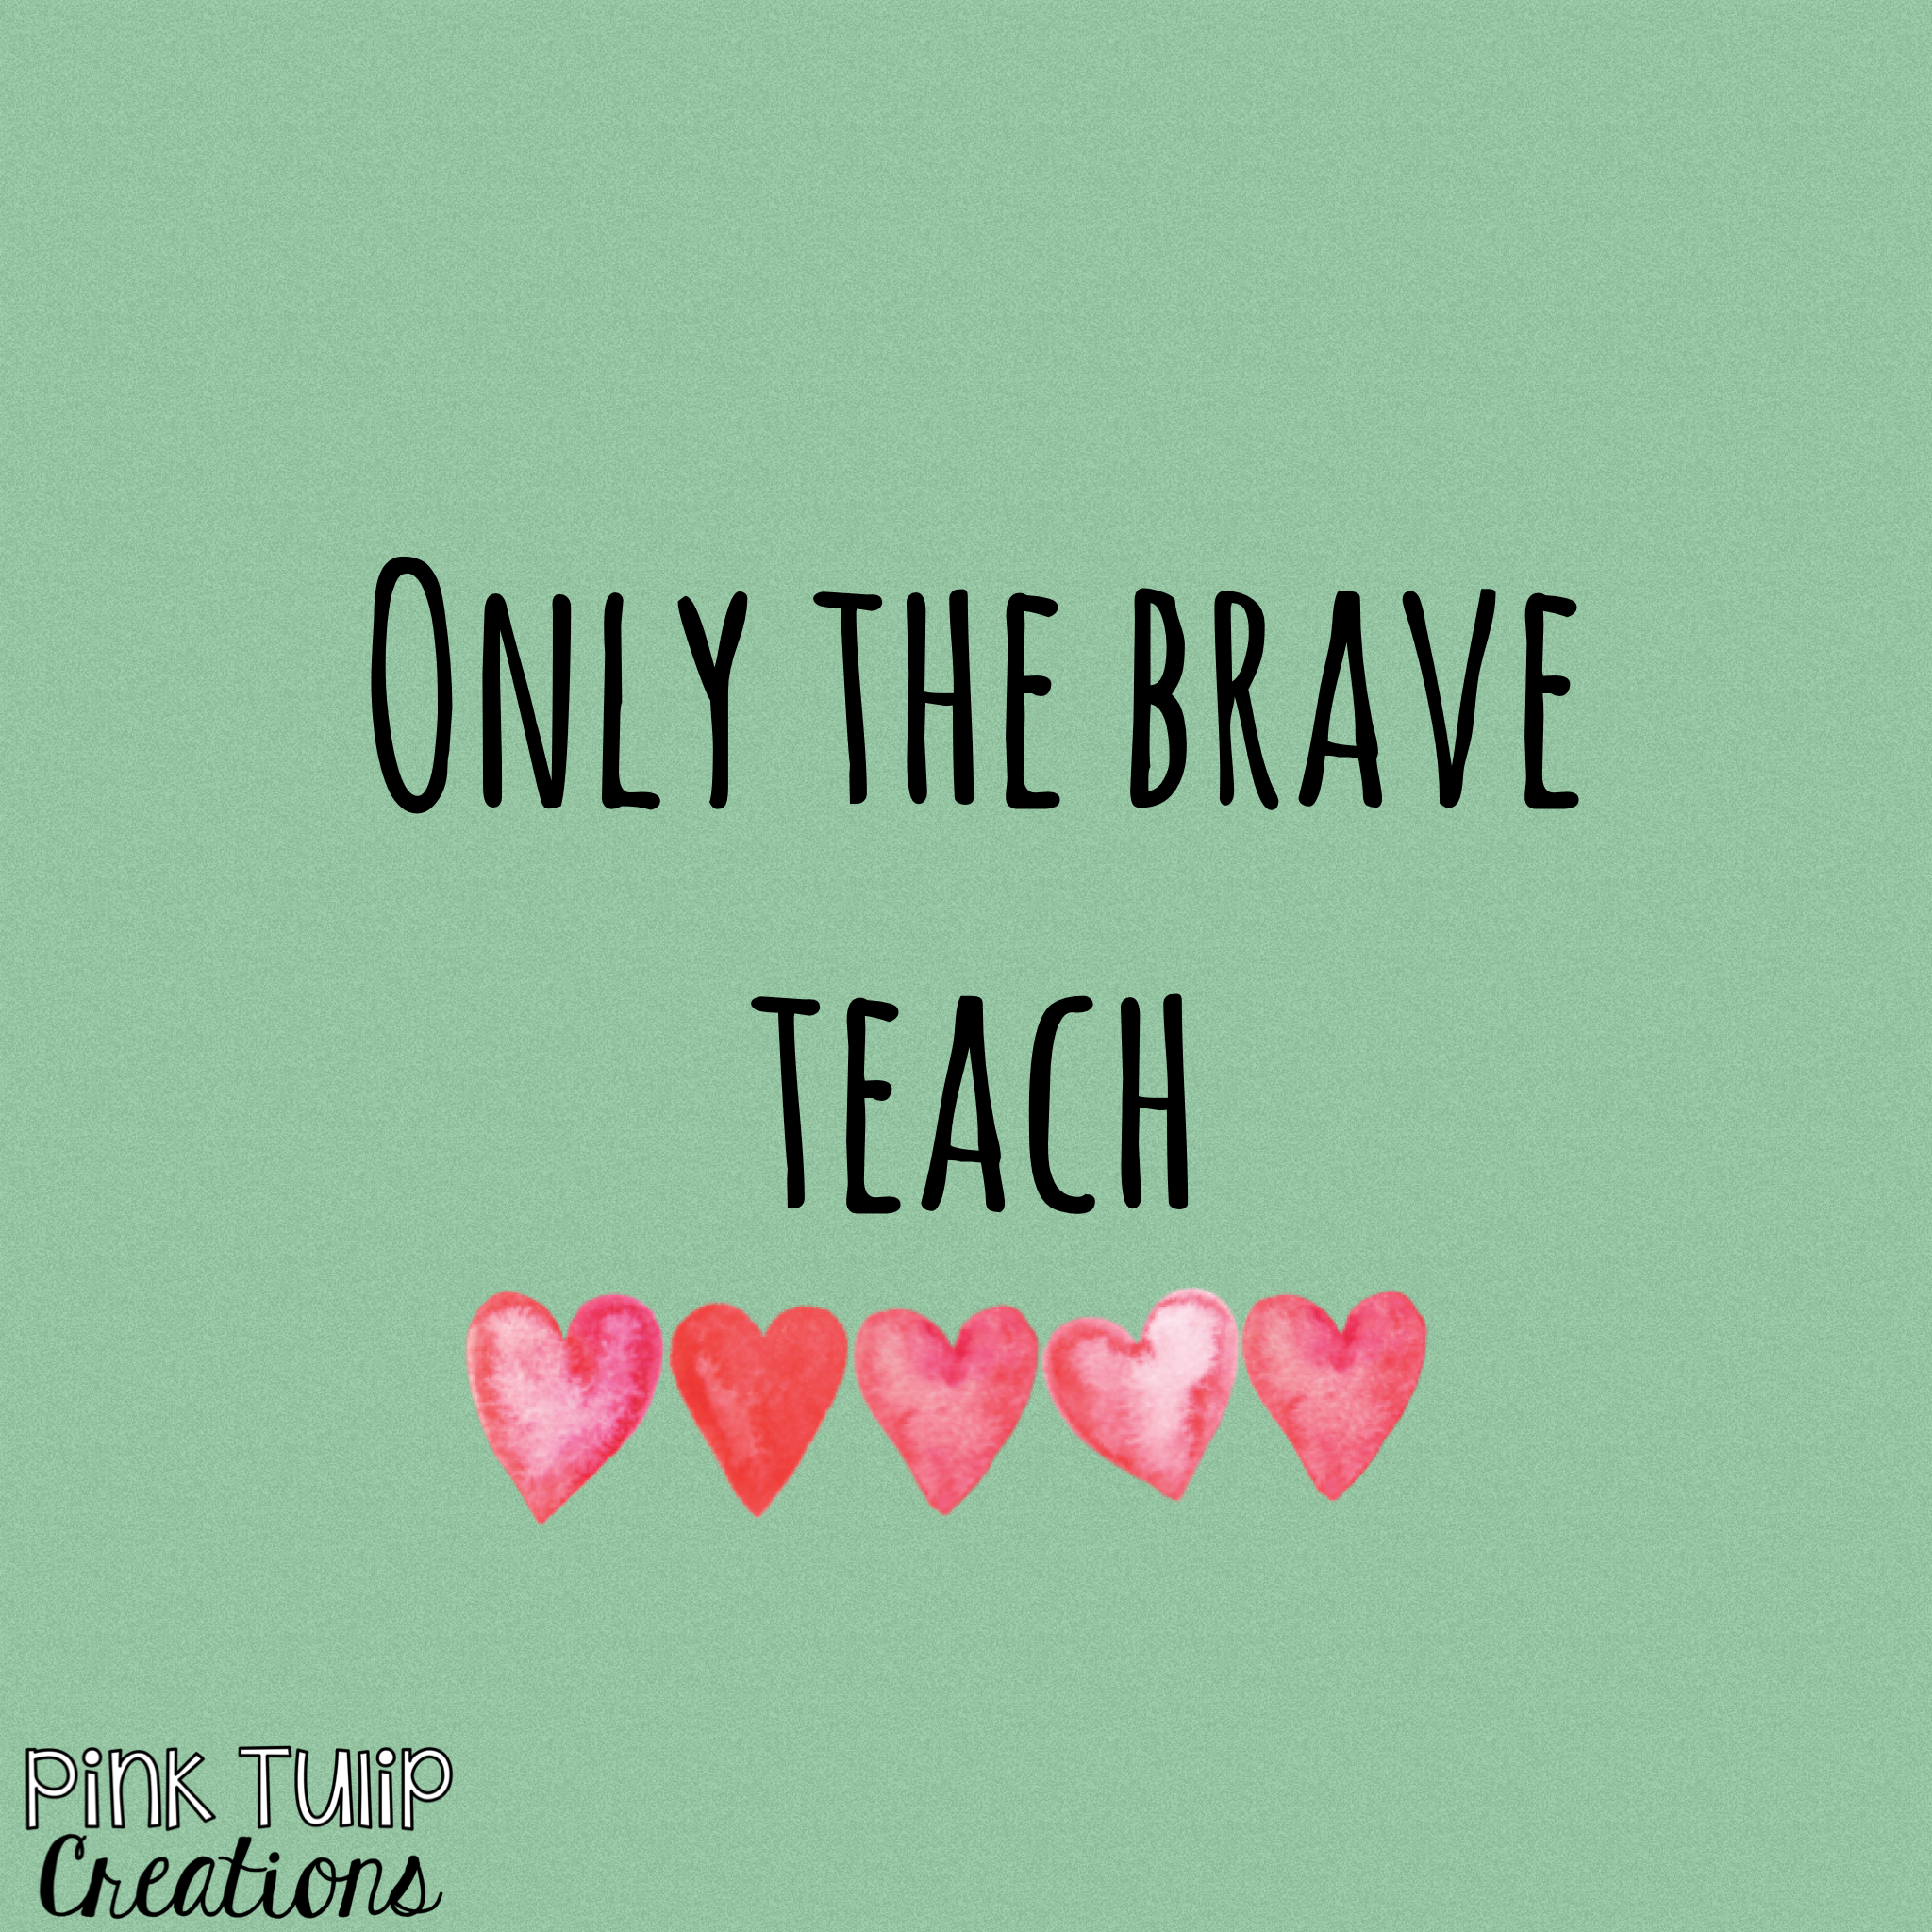 Teaching Quotes New Only The Brave Teachteaching Quotes Educational Education . Inspiration Design